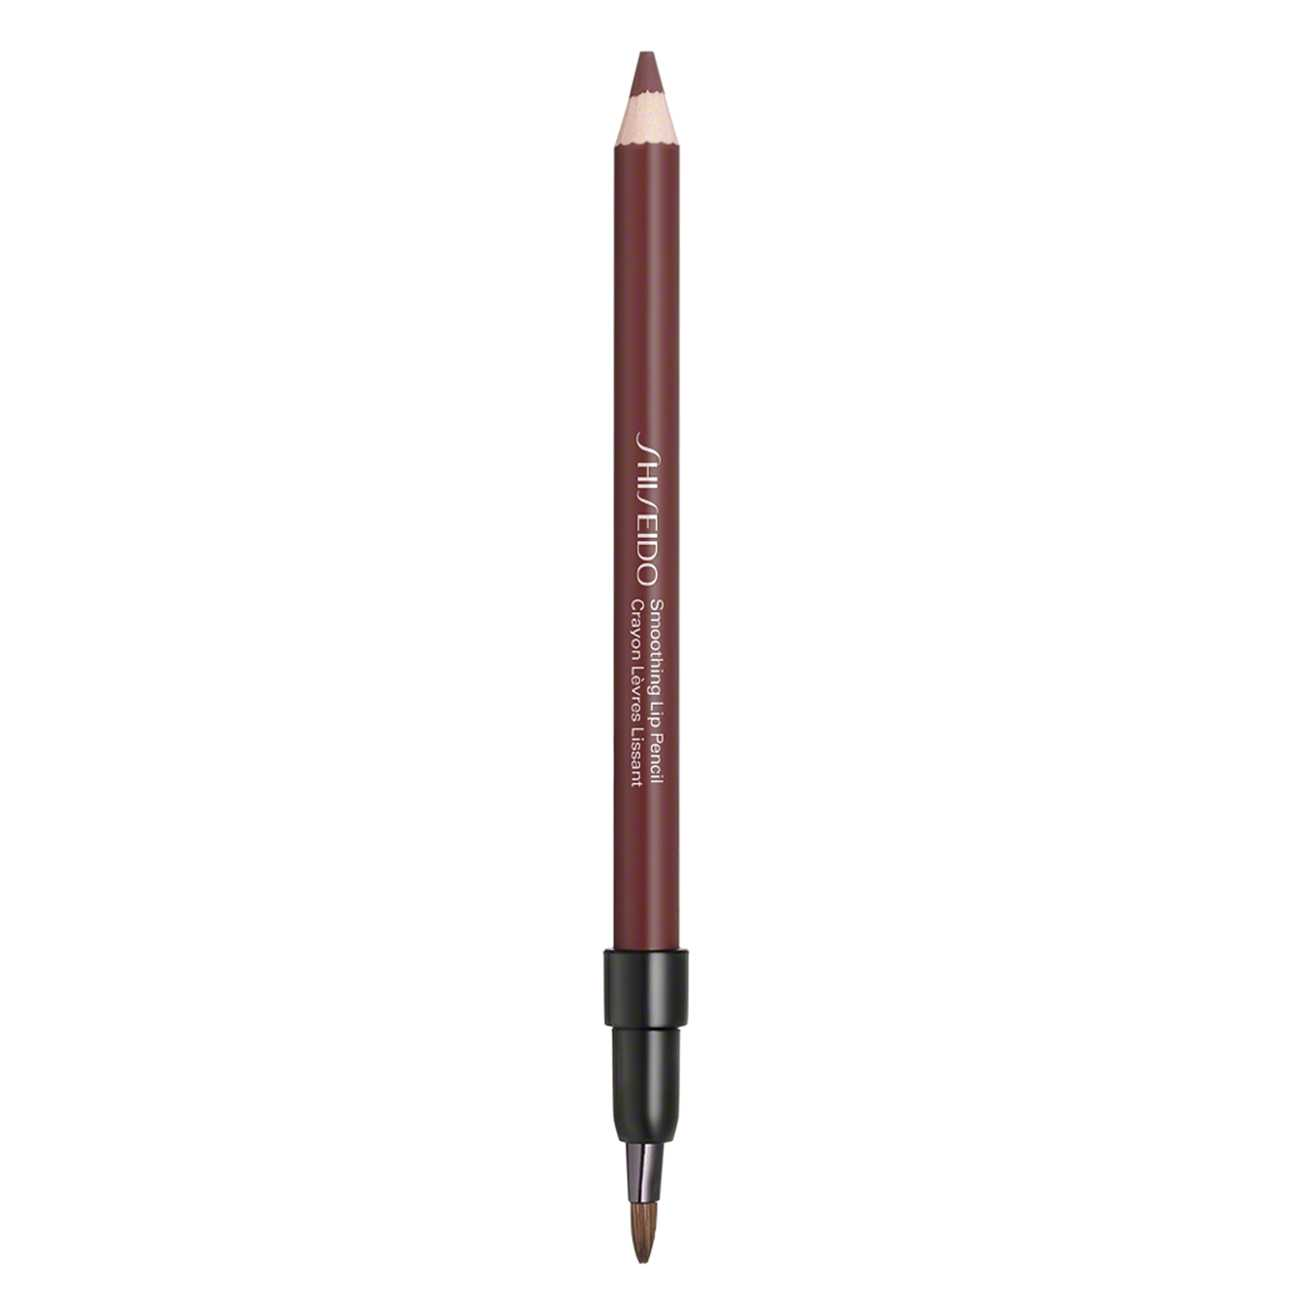 Lip Pencil Smoothing 4 G Rosewood Br 706 Shiseido imagine 2021 bestvalue.eu